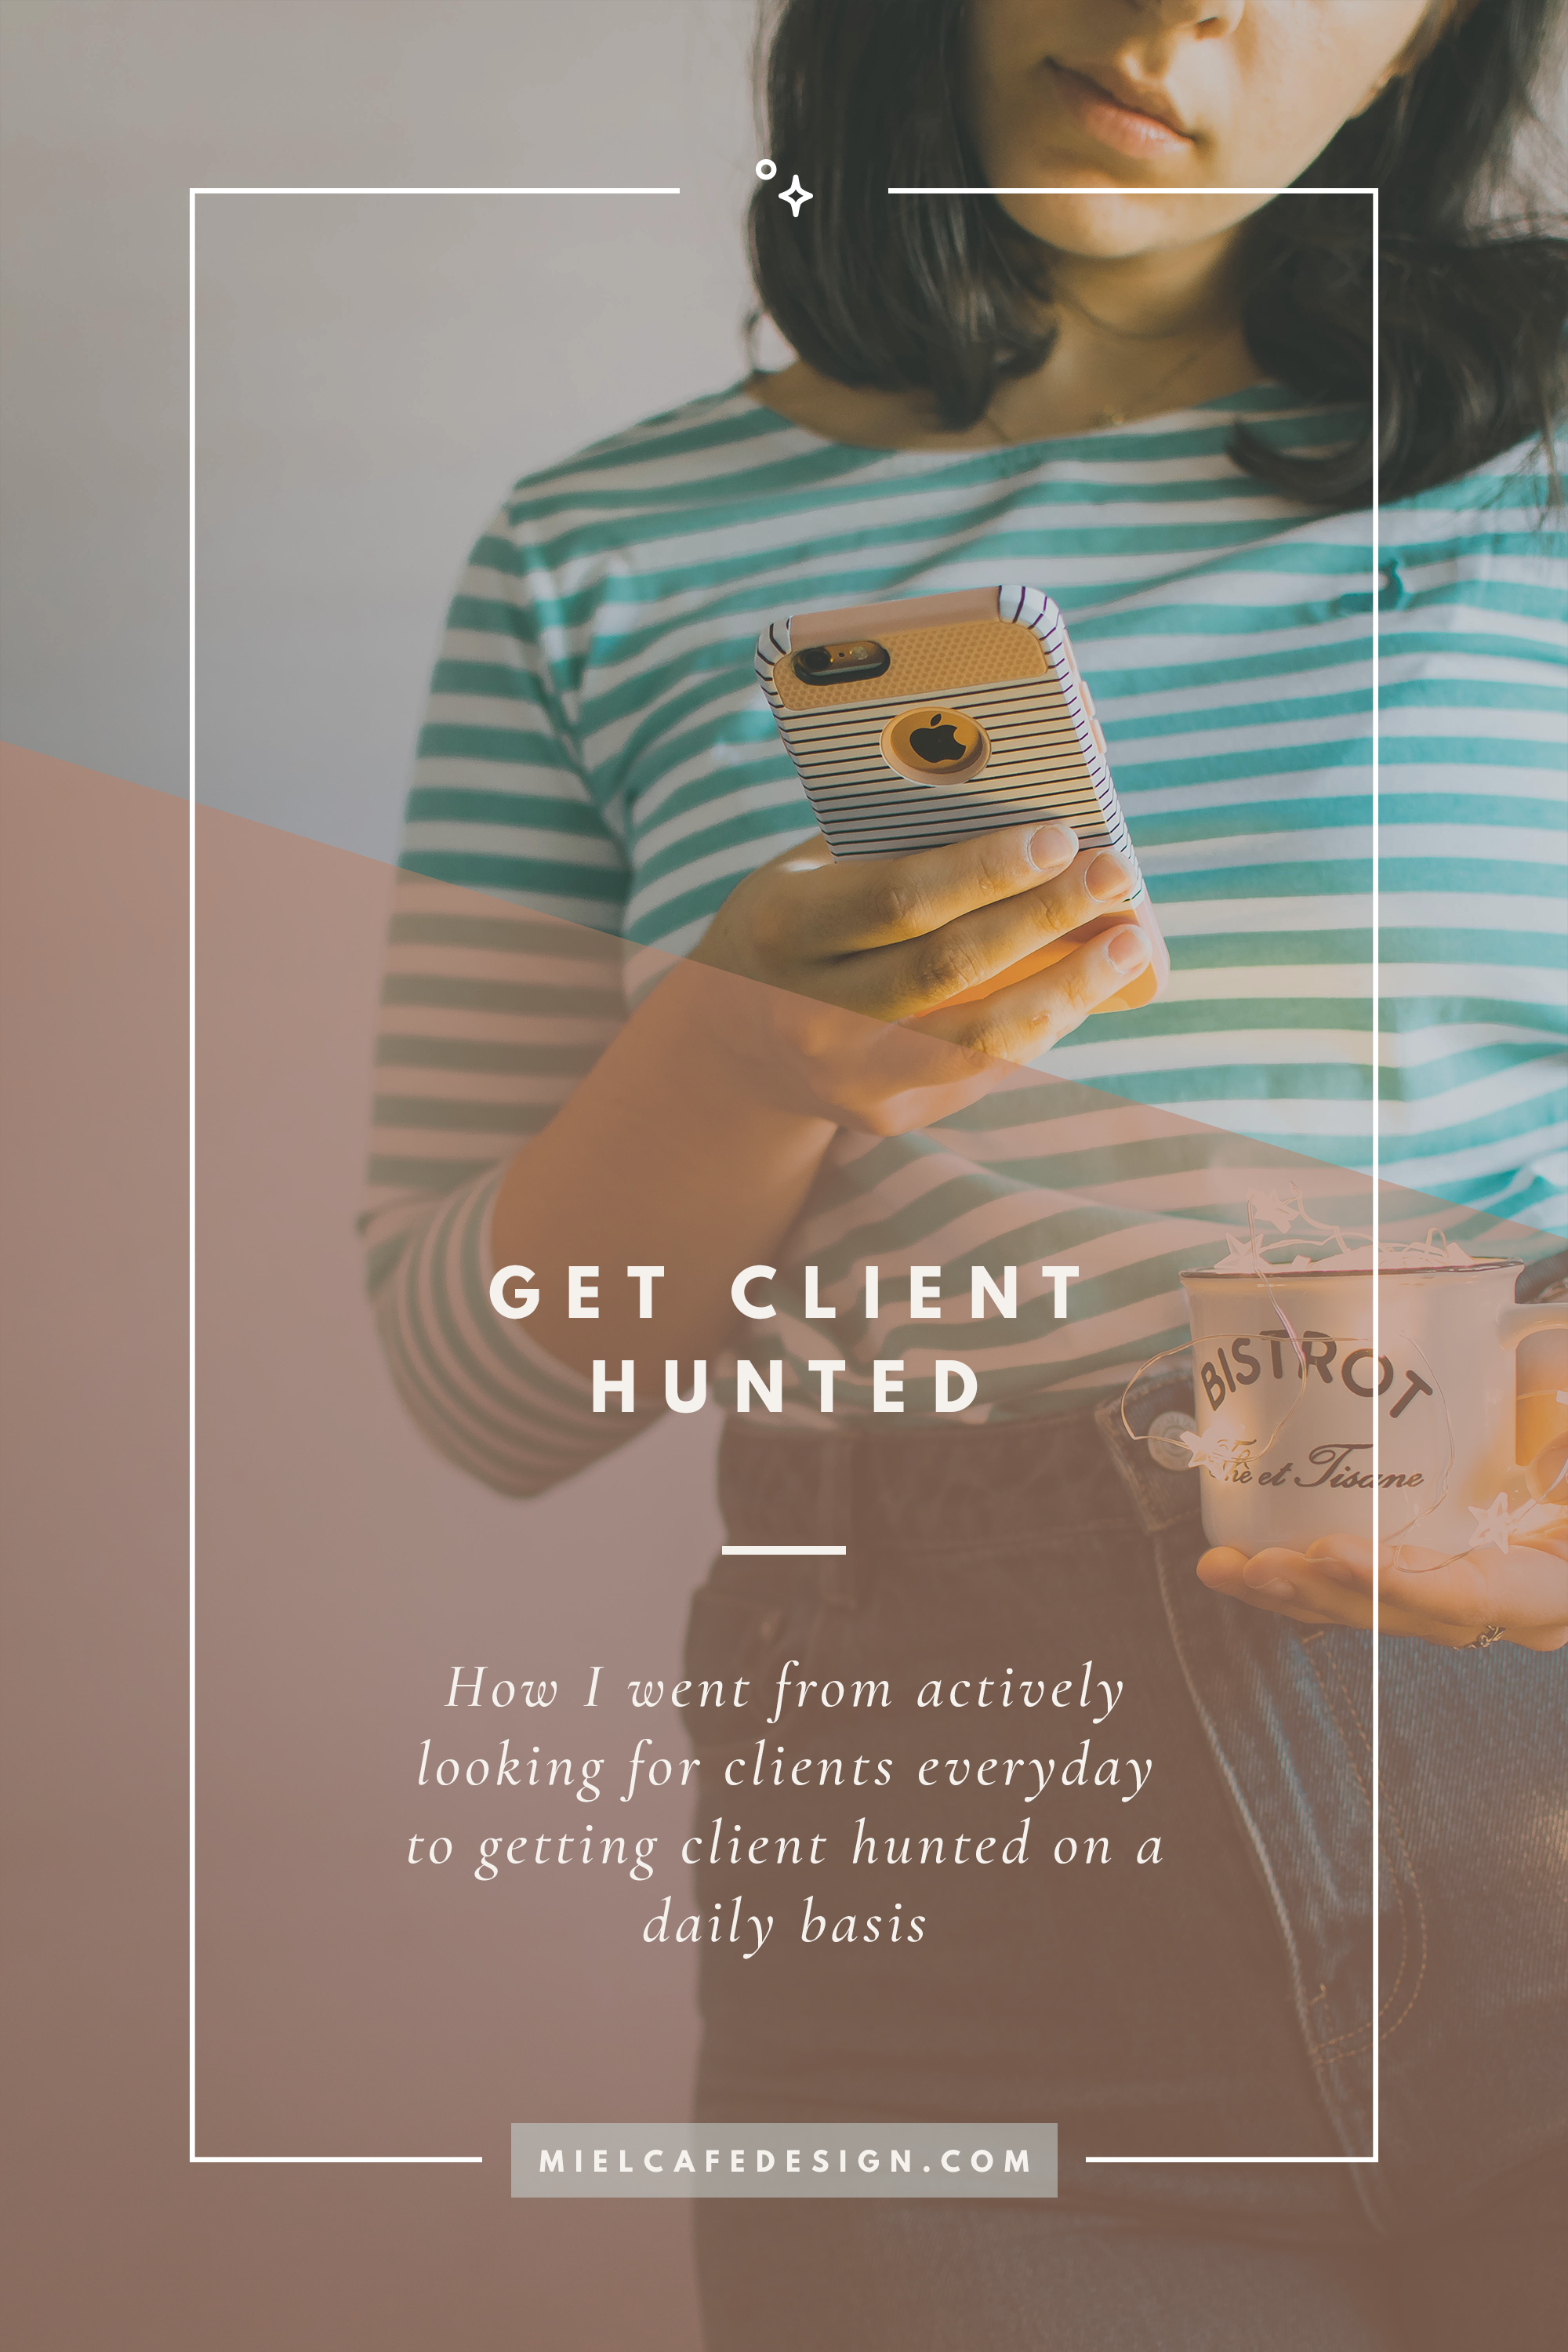 Get Client Hunted Email Course: A Guide To Attracting A Focused Clientele